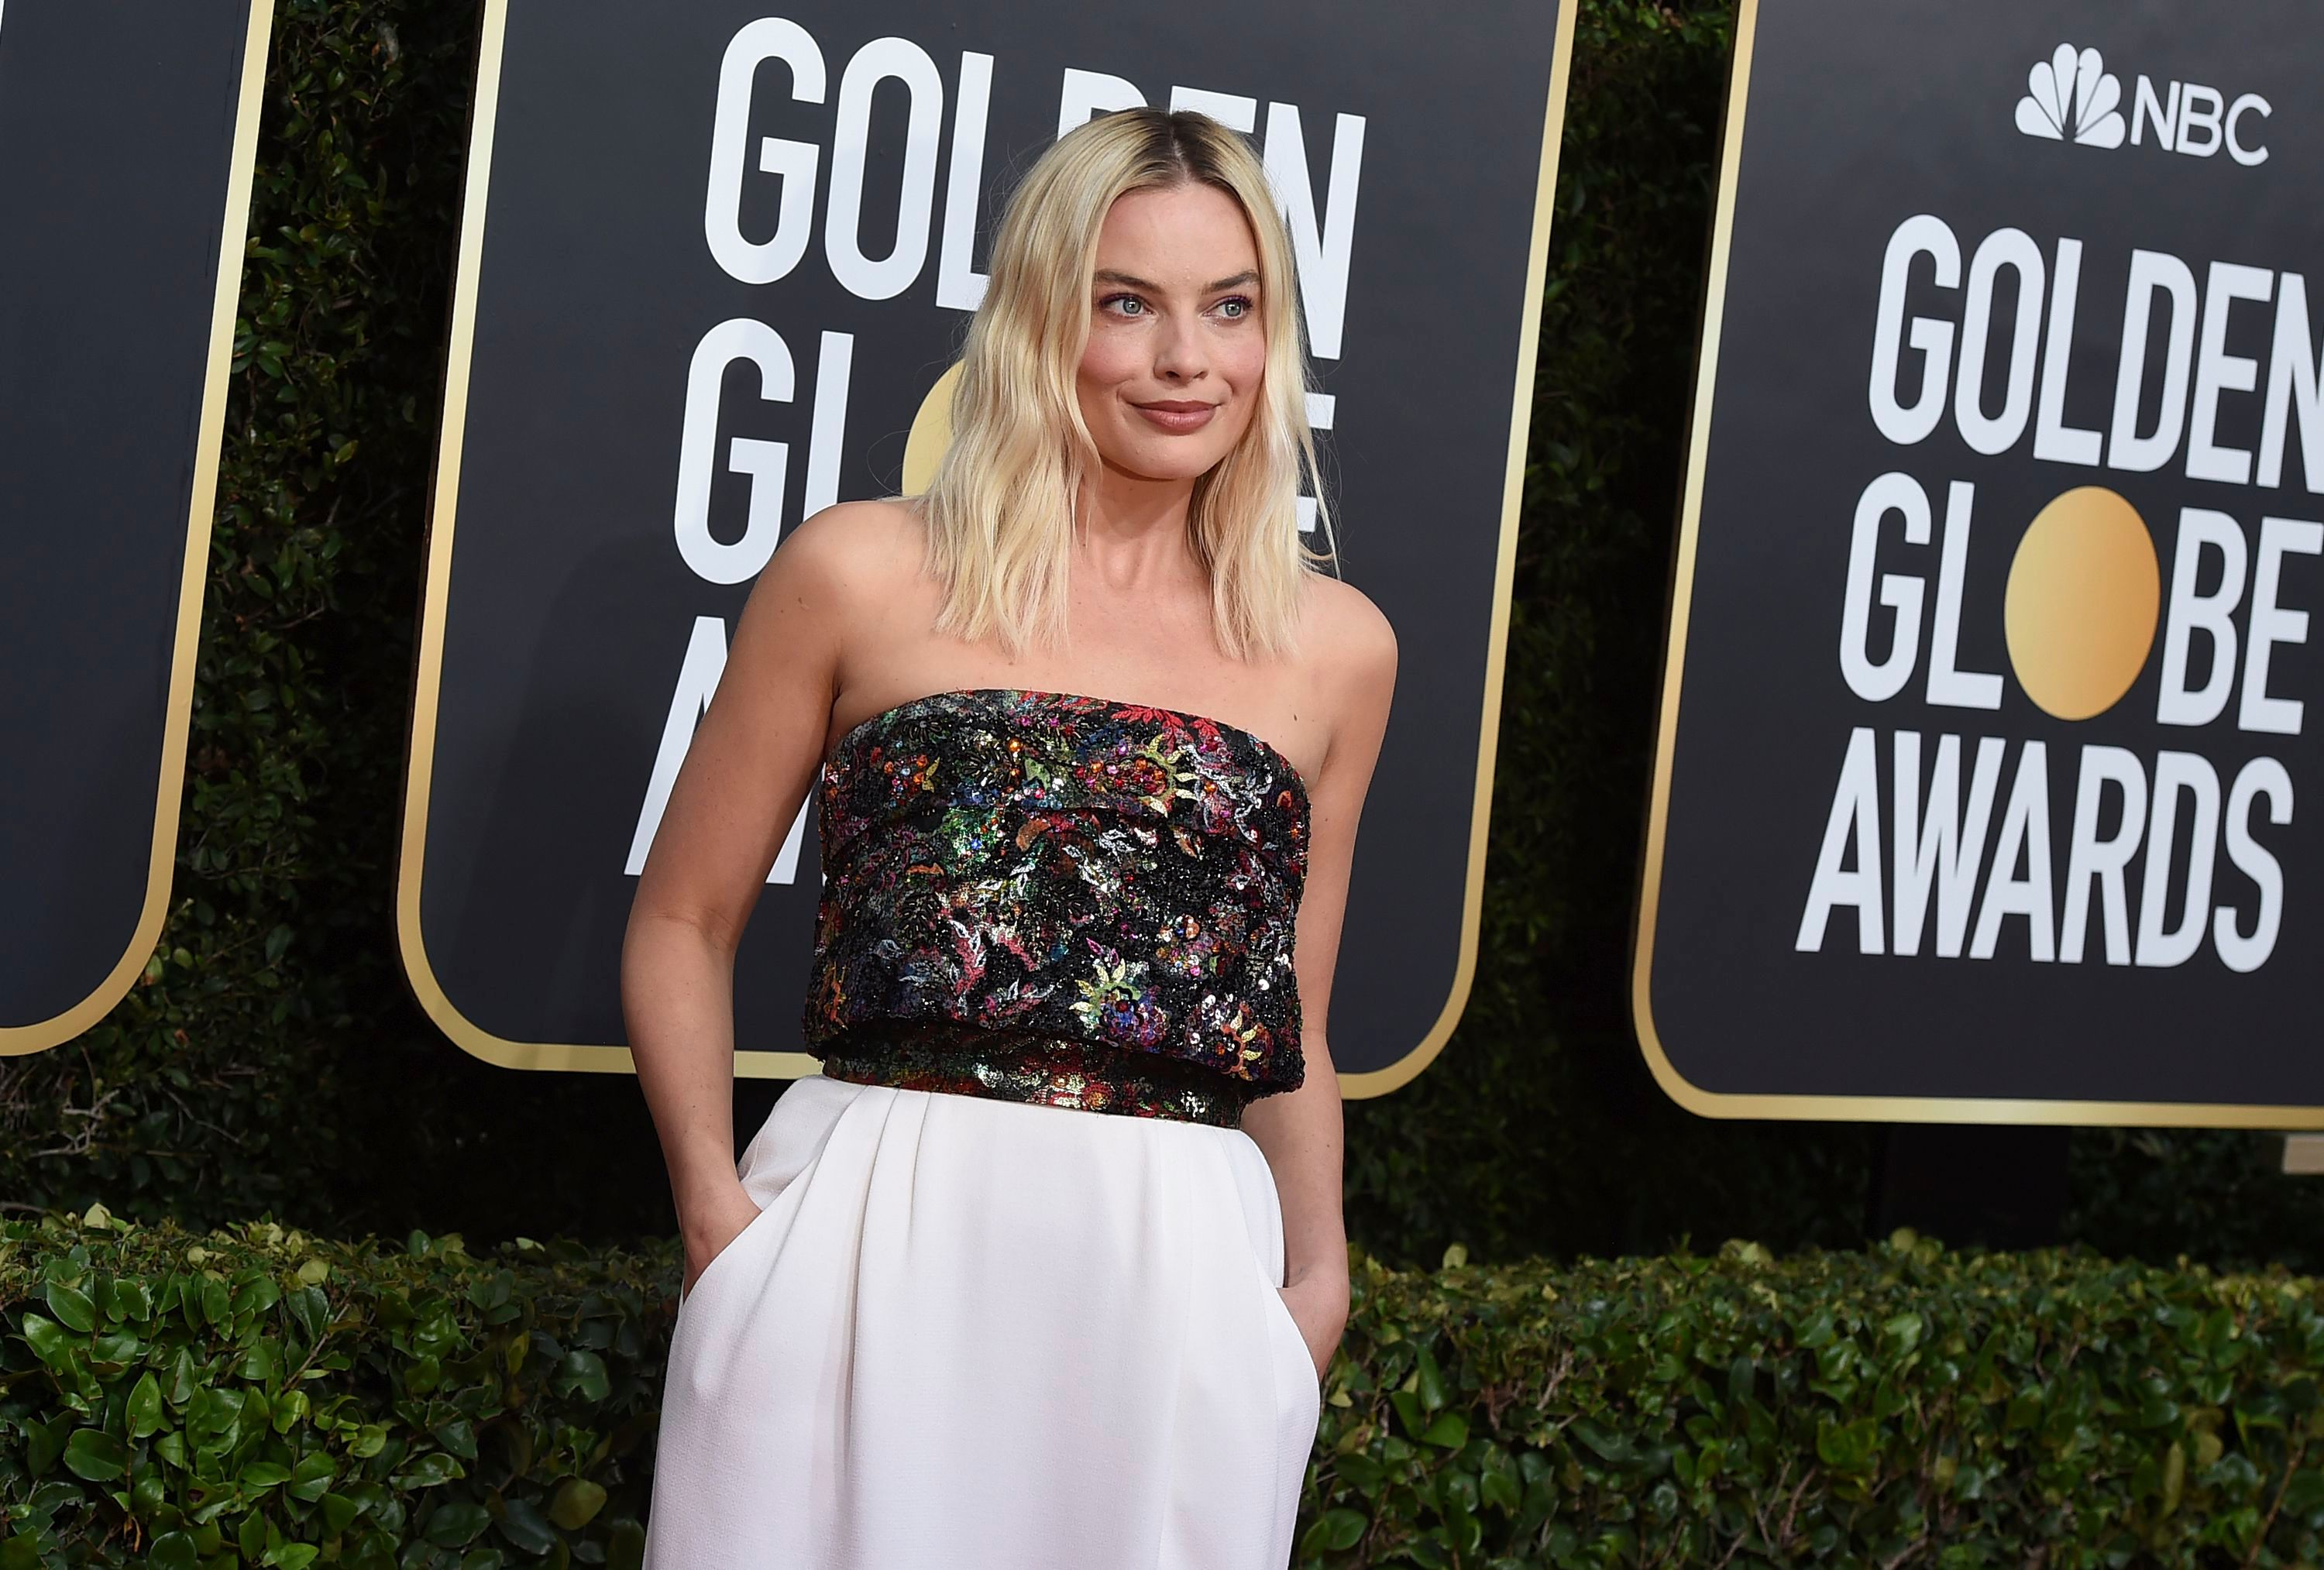 Margot Robbie arrives at the 77th annual Golden Globe Awards at the Beverly Hilton Hotel, in Beverly Hills, Calif77th Annual Golden Globe Awards - Arrivals, Beverly Hills, USA - 05 Jan 2020